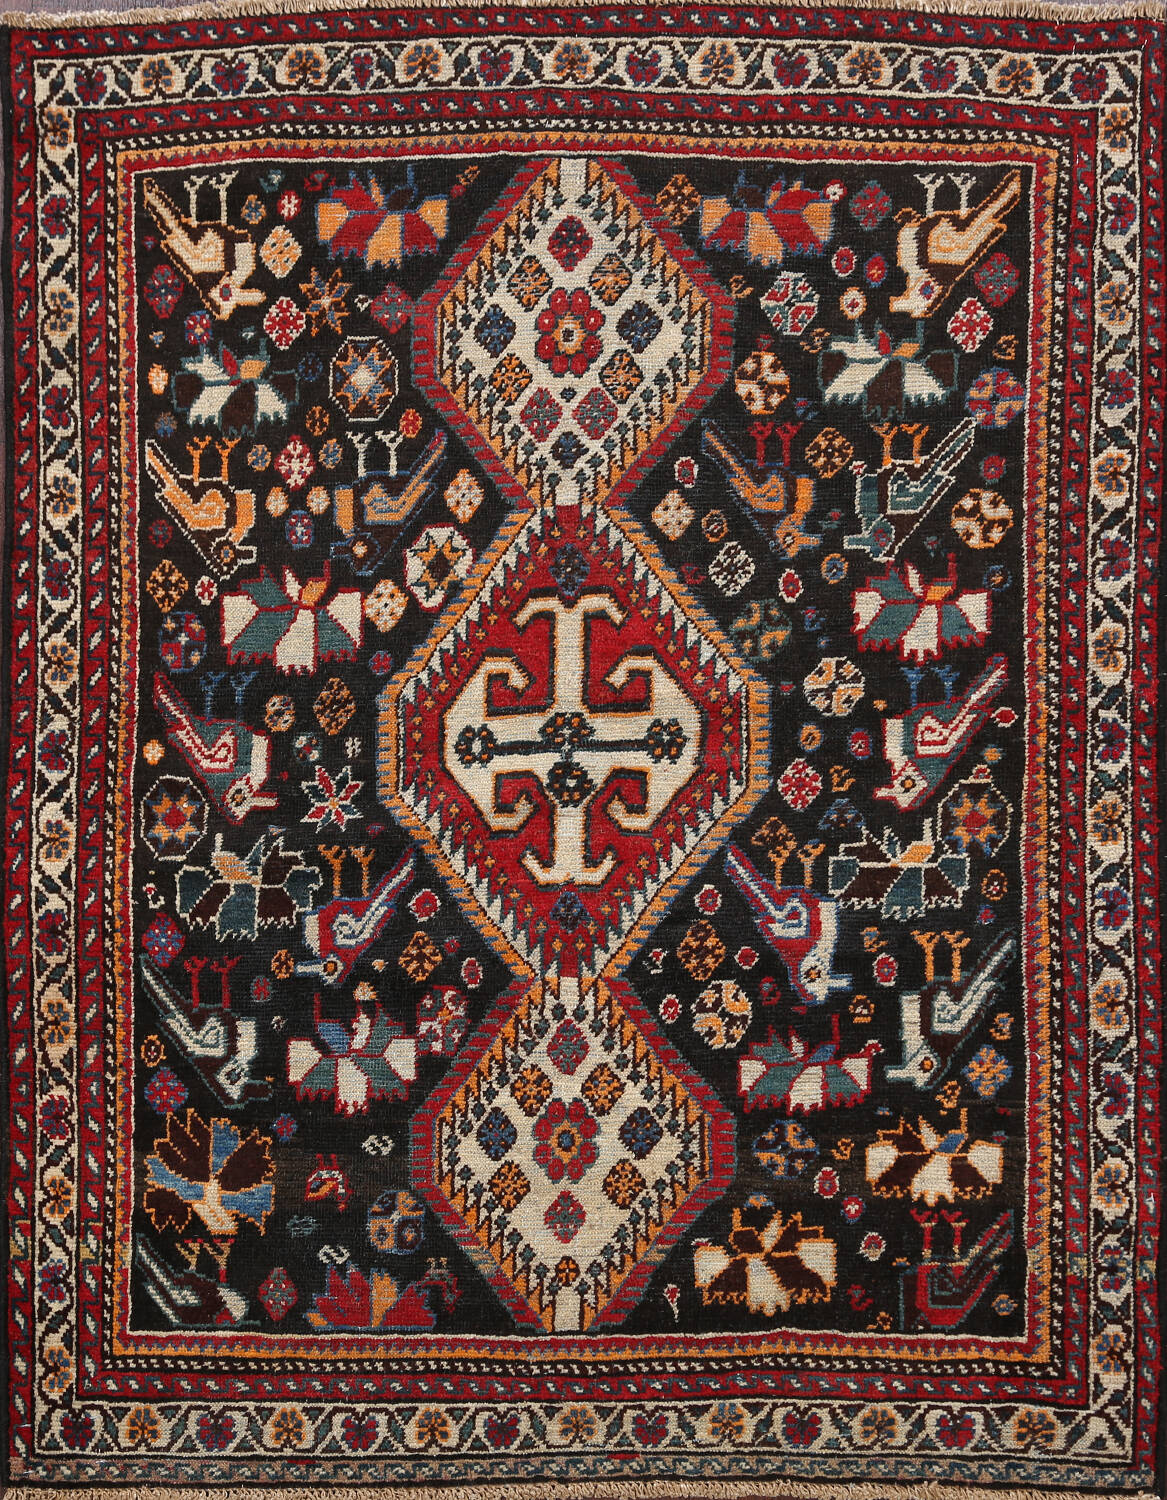 Antique Pre-1900 Tribal Bakhtiari Persian Area Rug 4x5 image 1